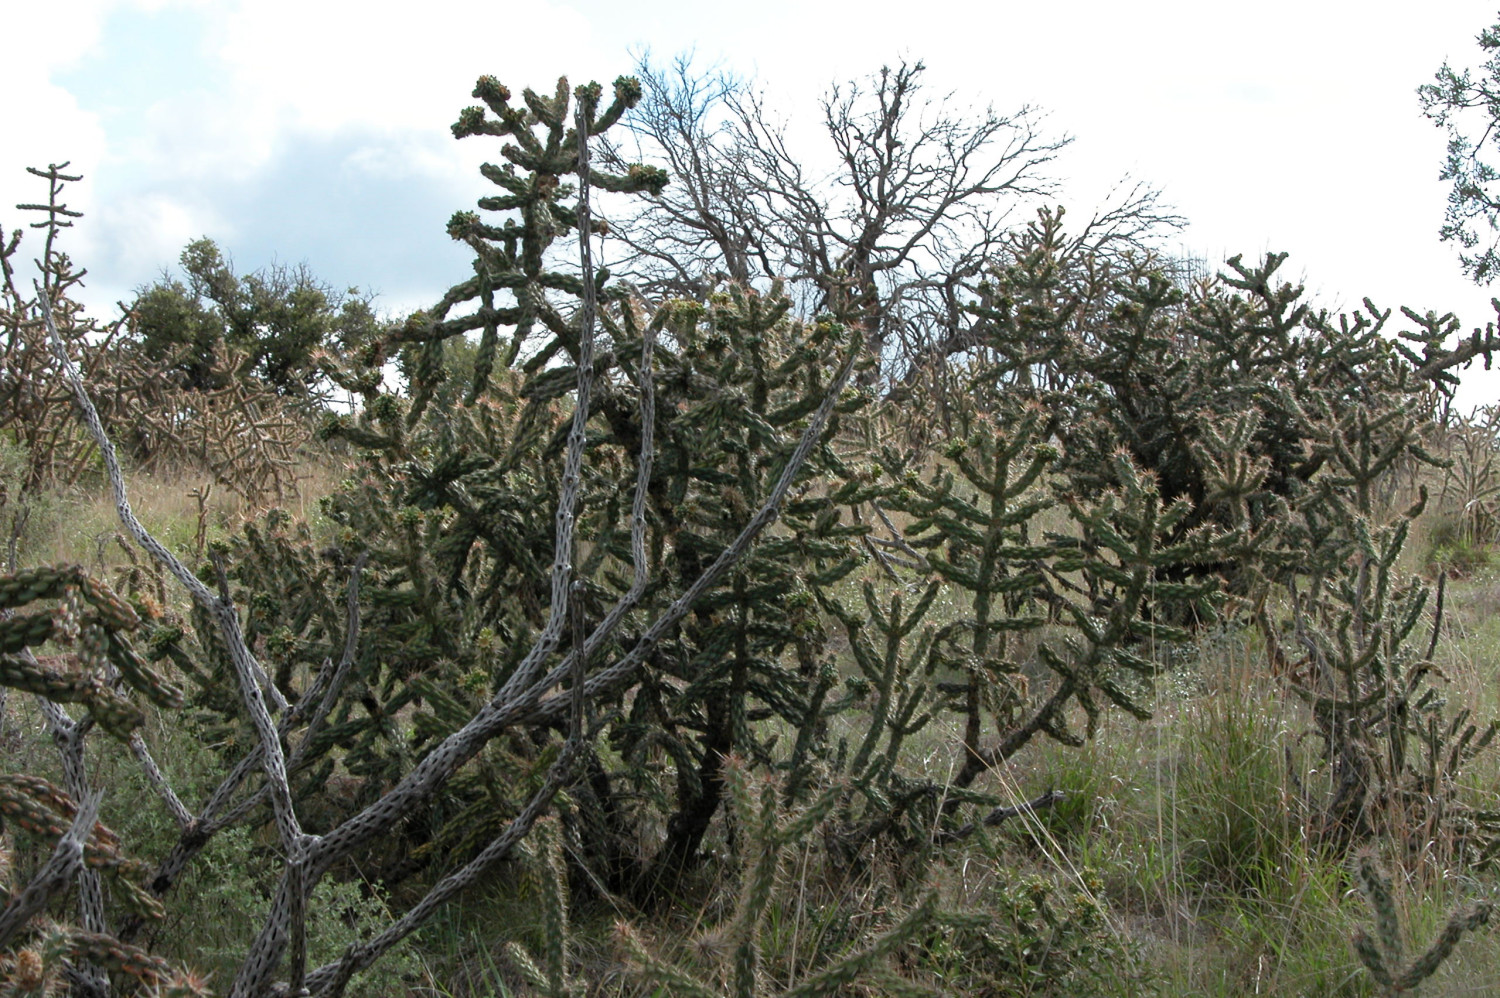 Cholla cactus                                                                                                      [Sequence #]: 1 of 1